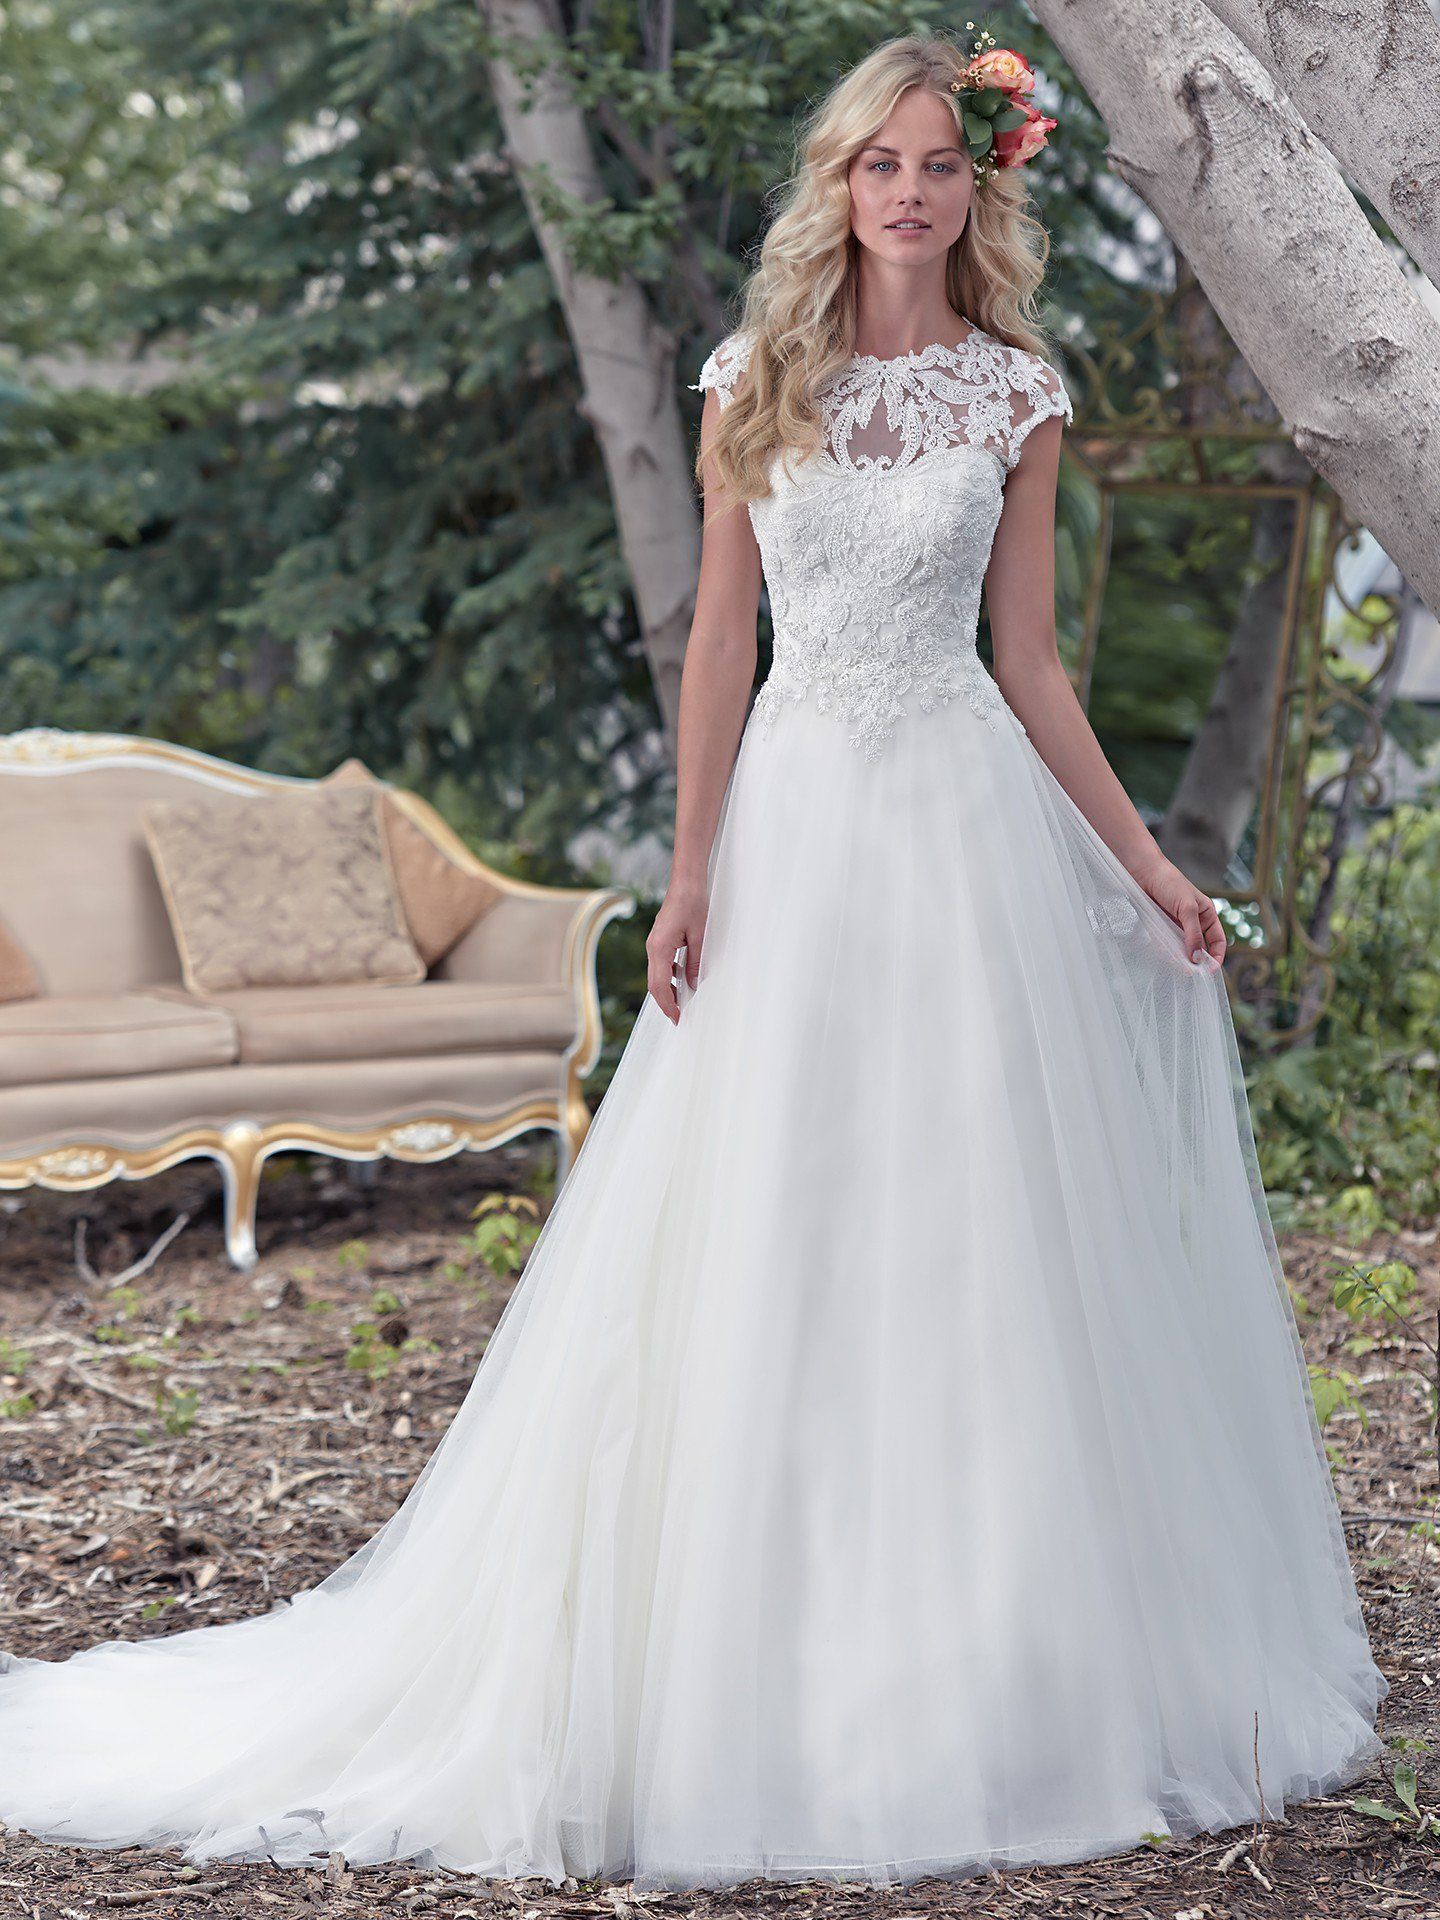 Best Of Wedding Dresses Edmonton